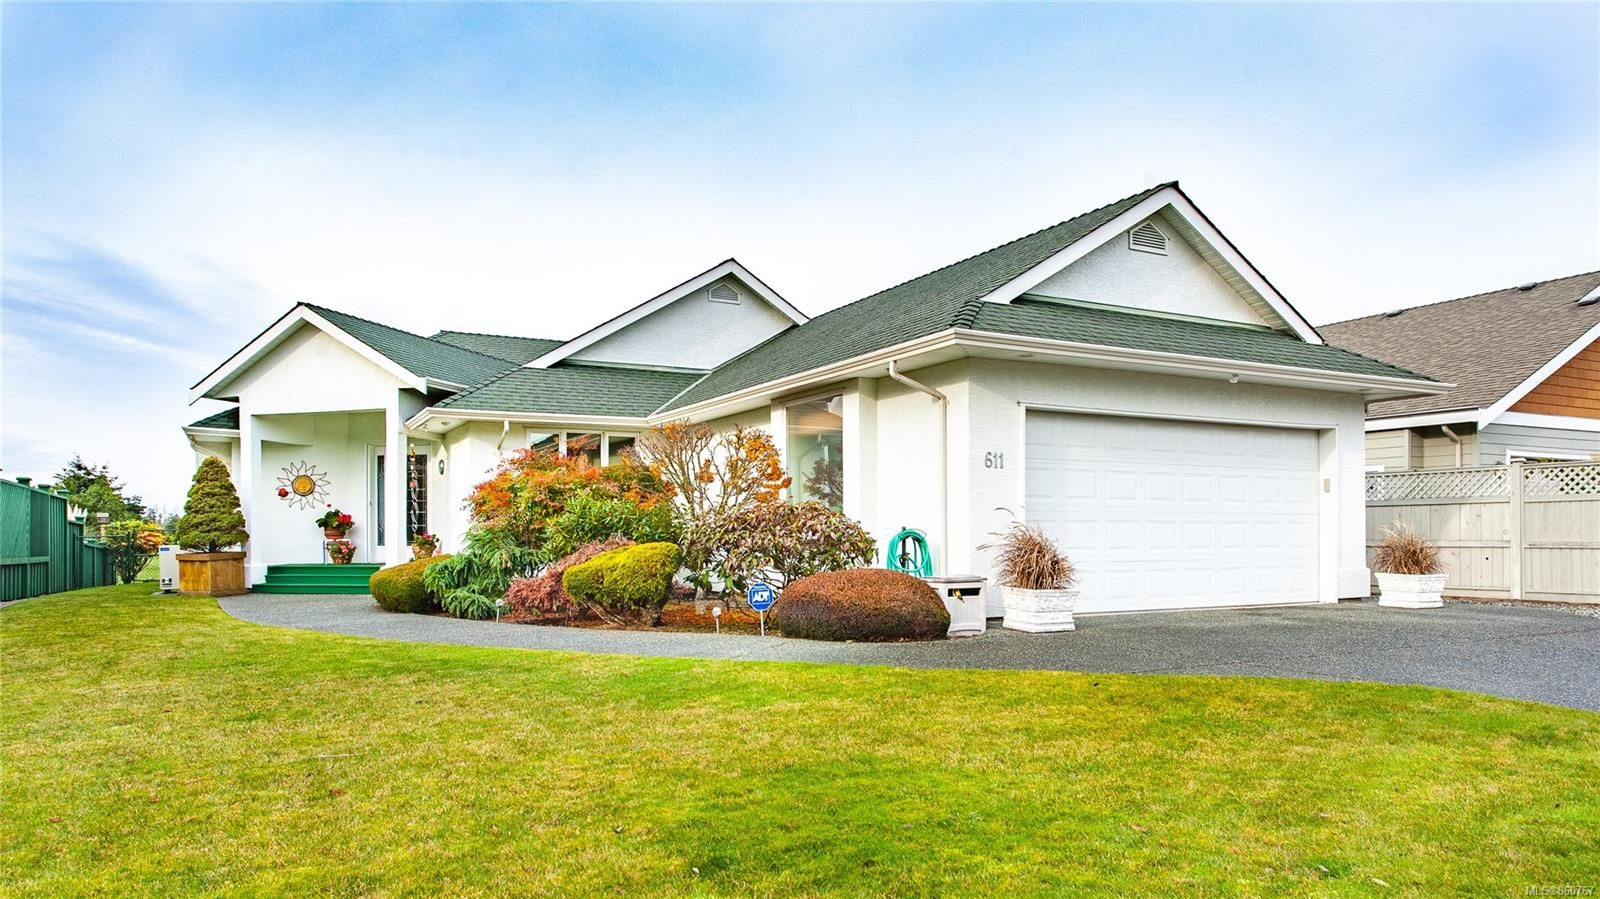 Main Photo: 611 Lowry's Rd in : PQ French Creek House for sale (Parksville/Qualicum)  : MLS®# 860767